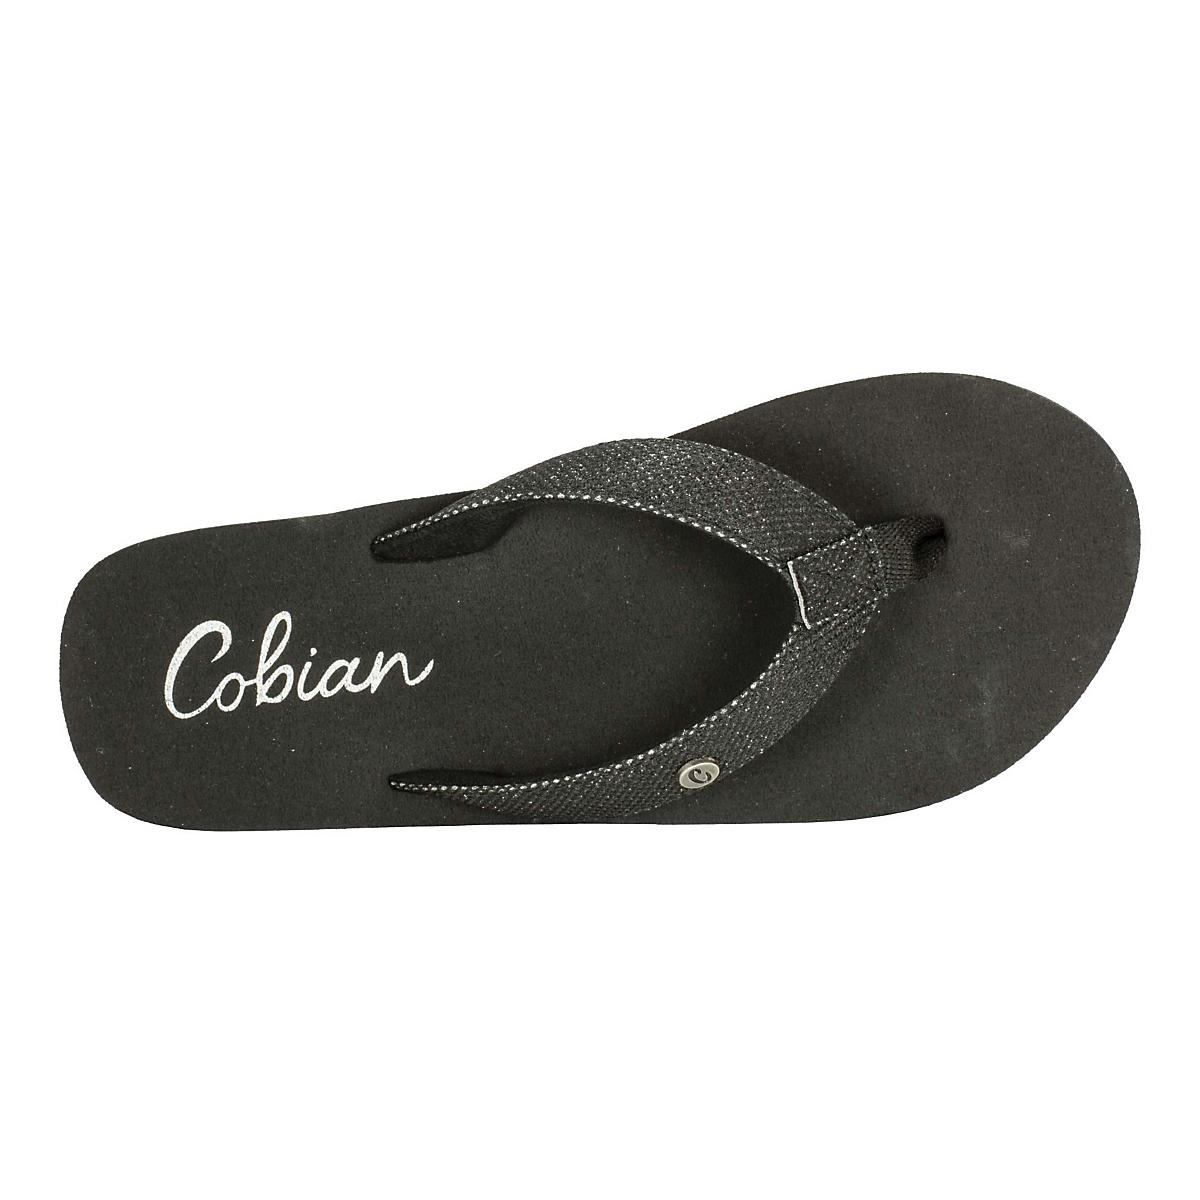 55fcd15e6 Womens Cobian Cancun Bounce Sandals Shoe at Road Runner Sports